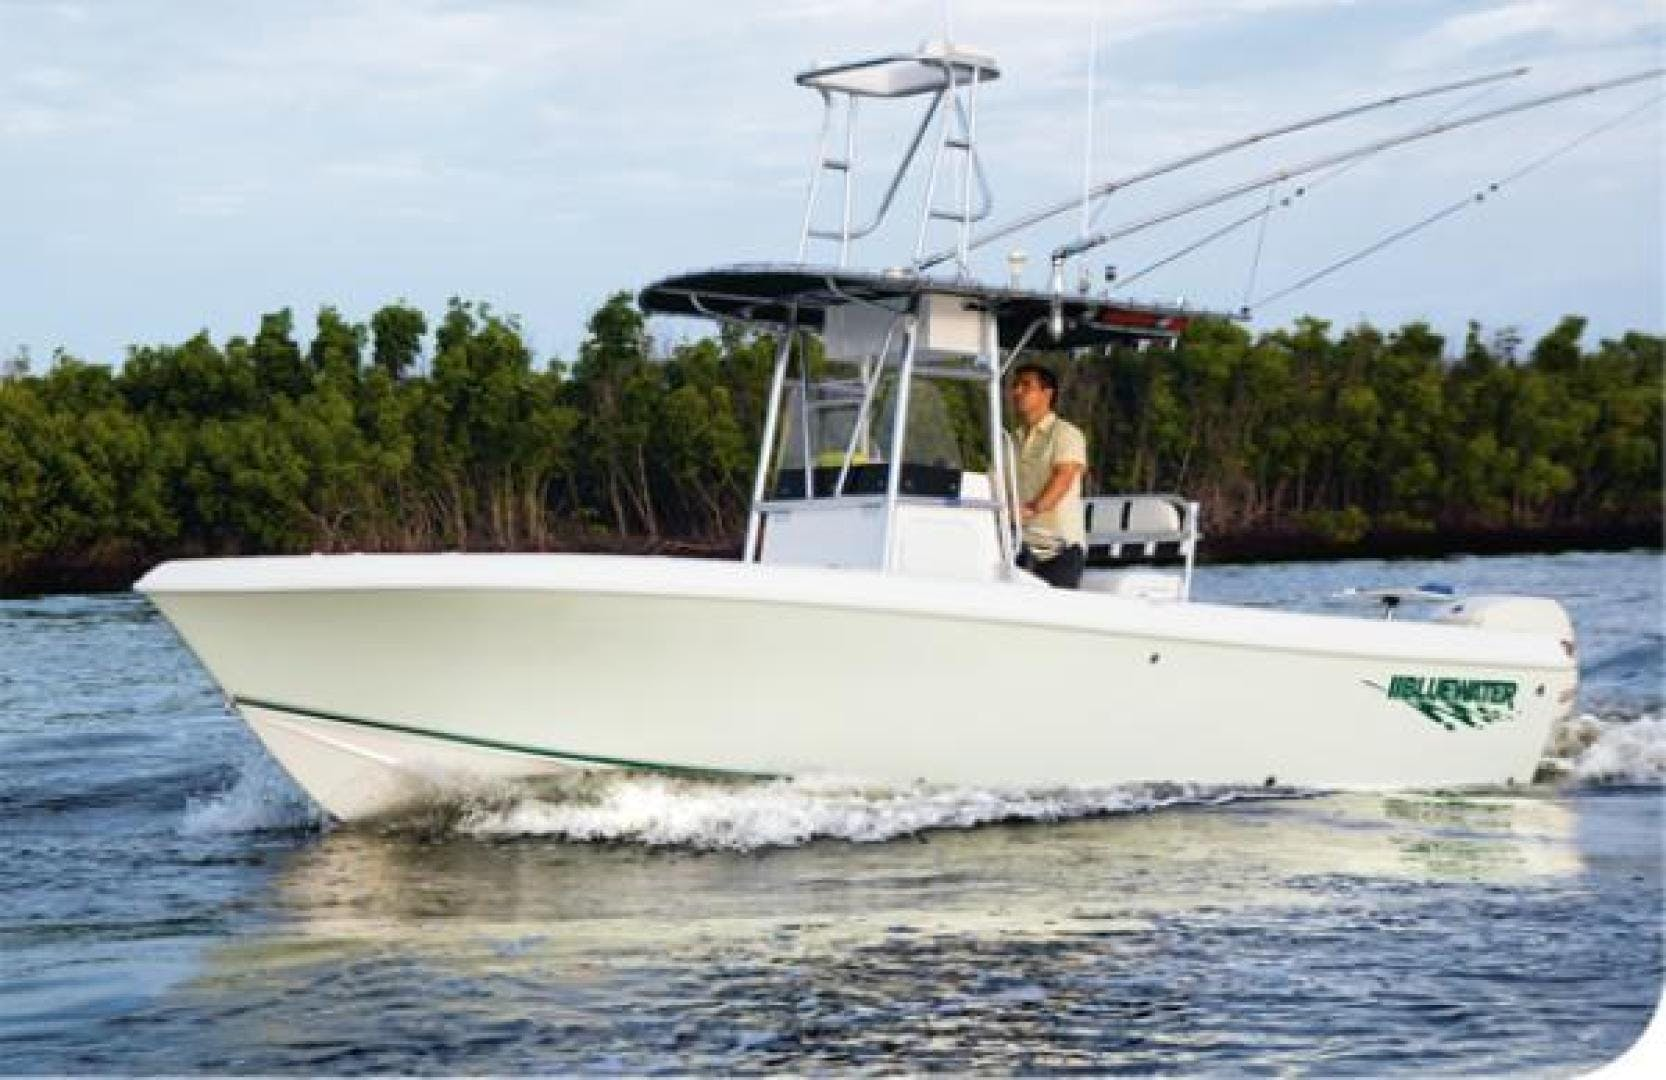 2020 Bluewater Sportfishing 22' 23t Bluewater Sportfishing 23t | Picture 5 of 7